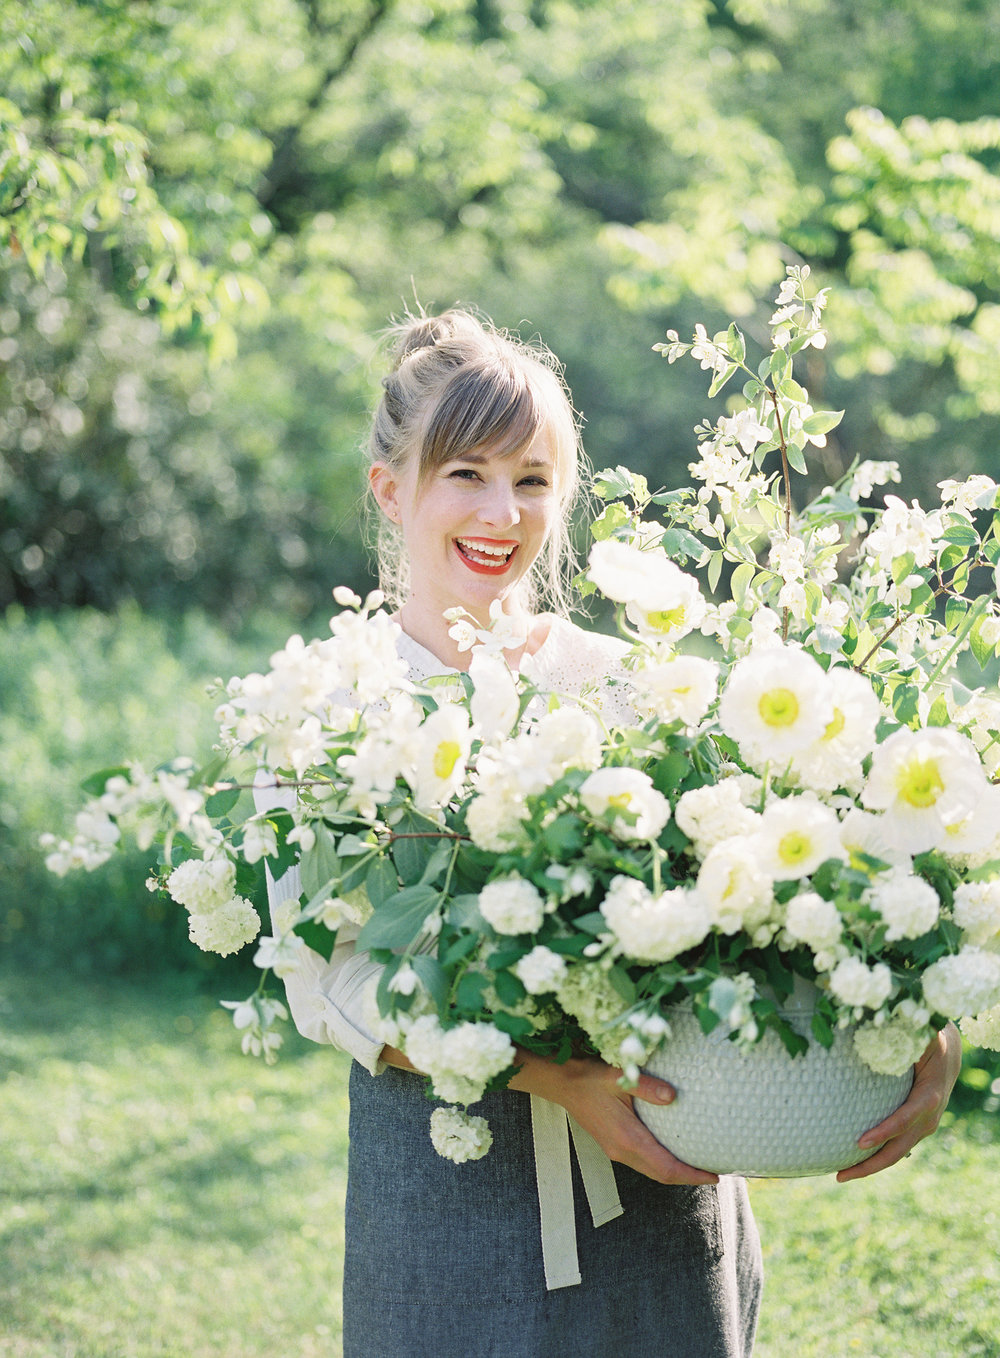 How to start a floral design business